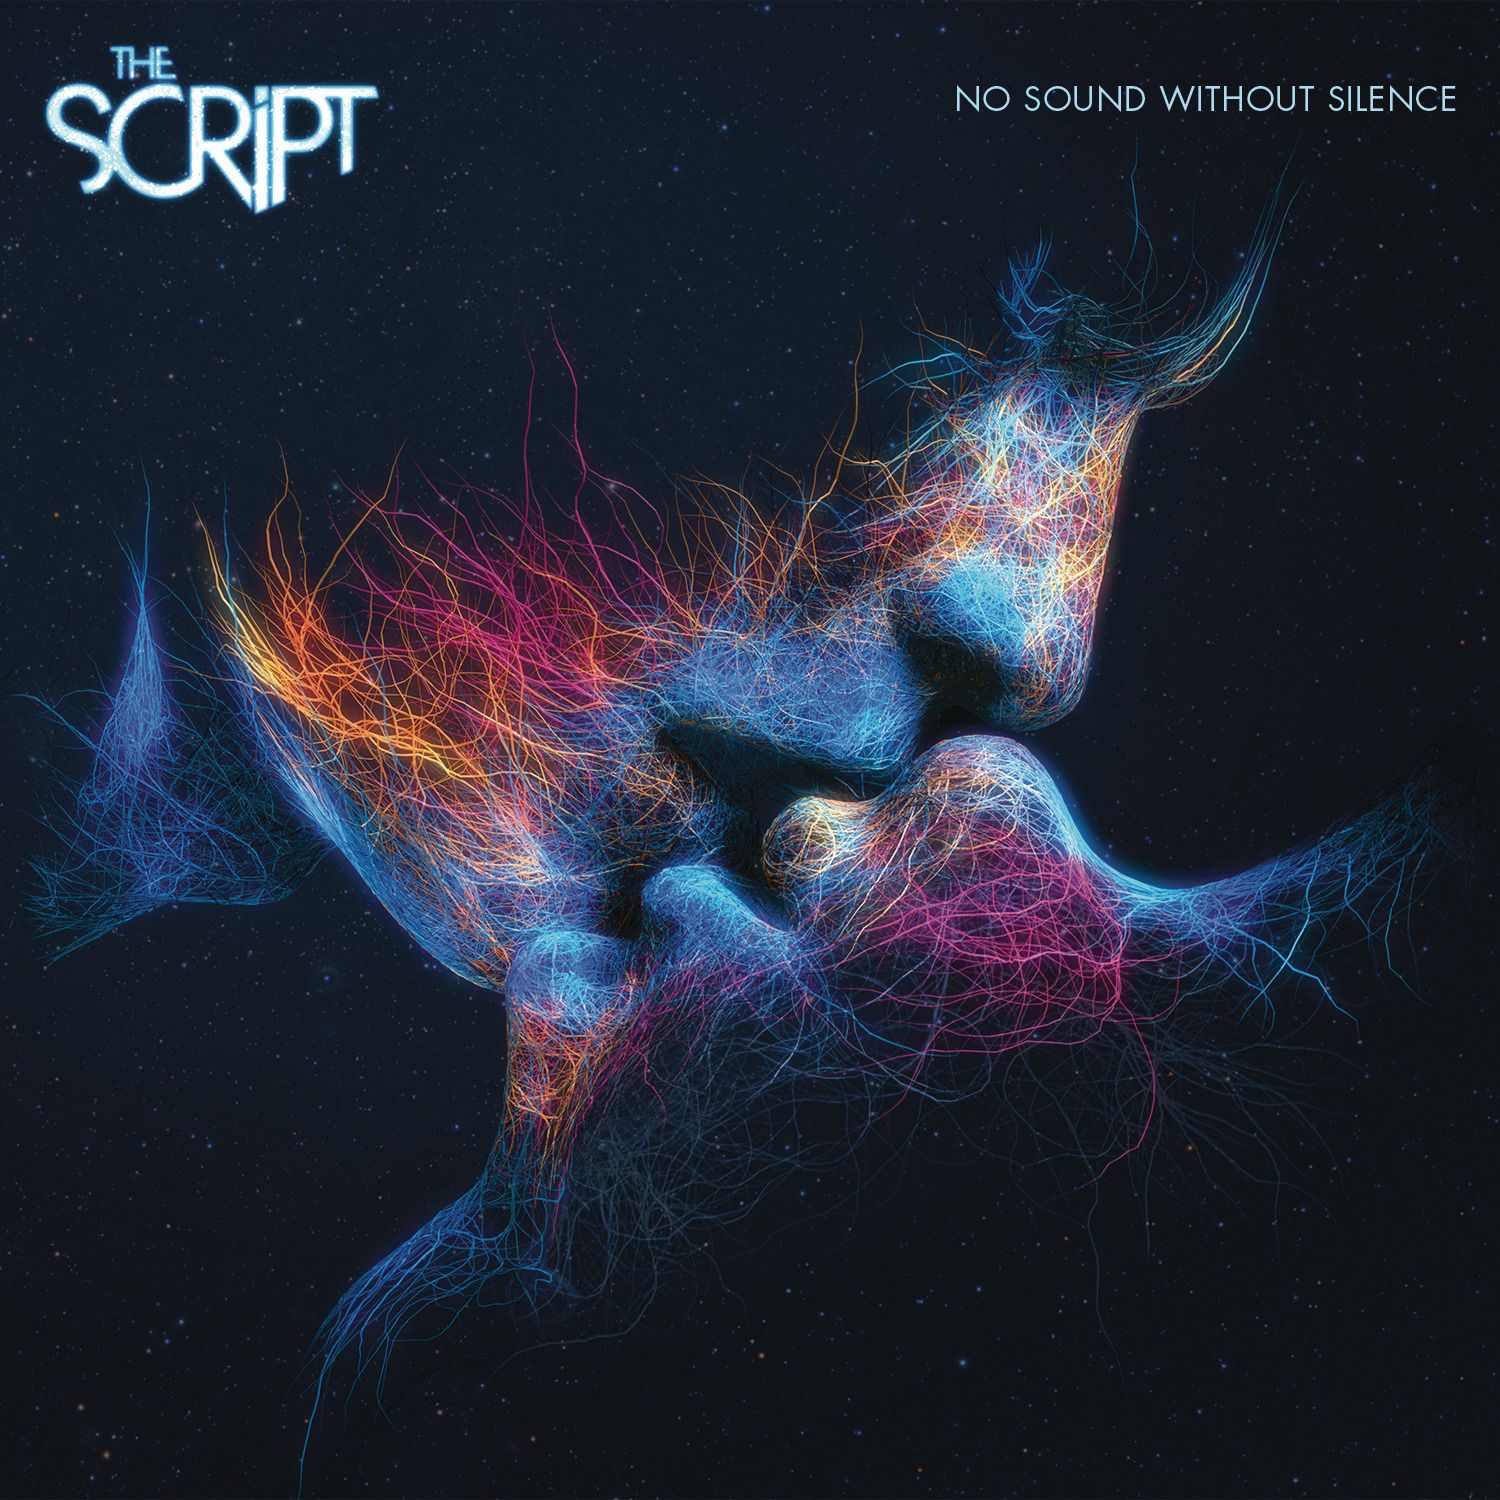 The Script - No Sound Without Silence album cover